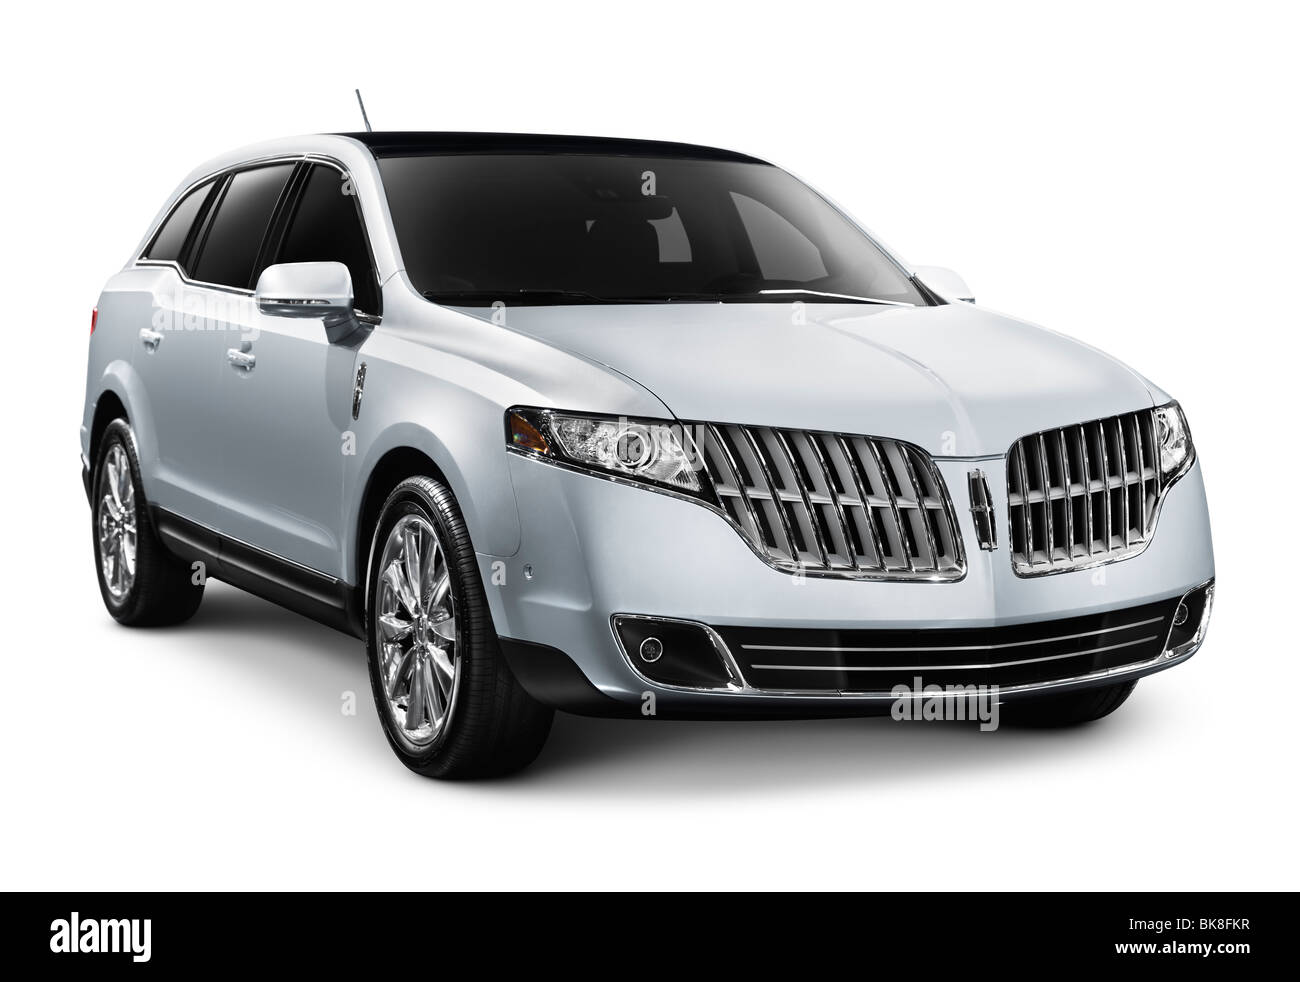 2010 Lincoln MKT luxury crossover. Isolated car on white background with clipping path. - Stock Image